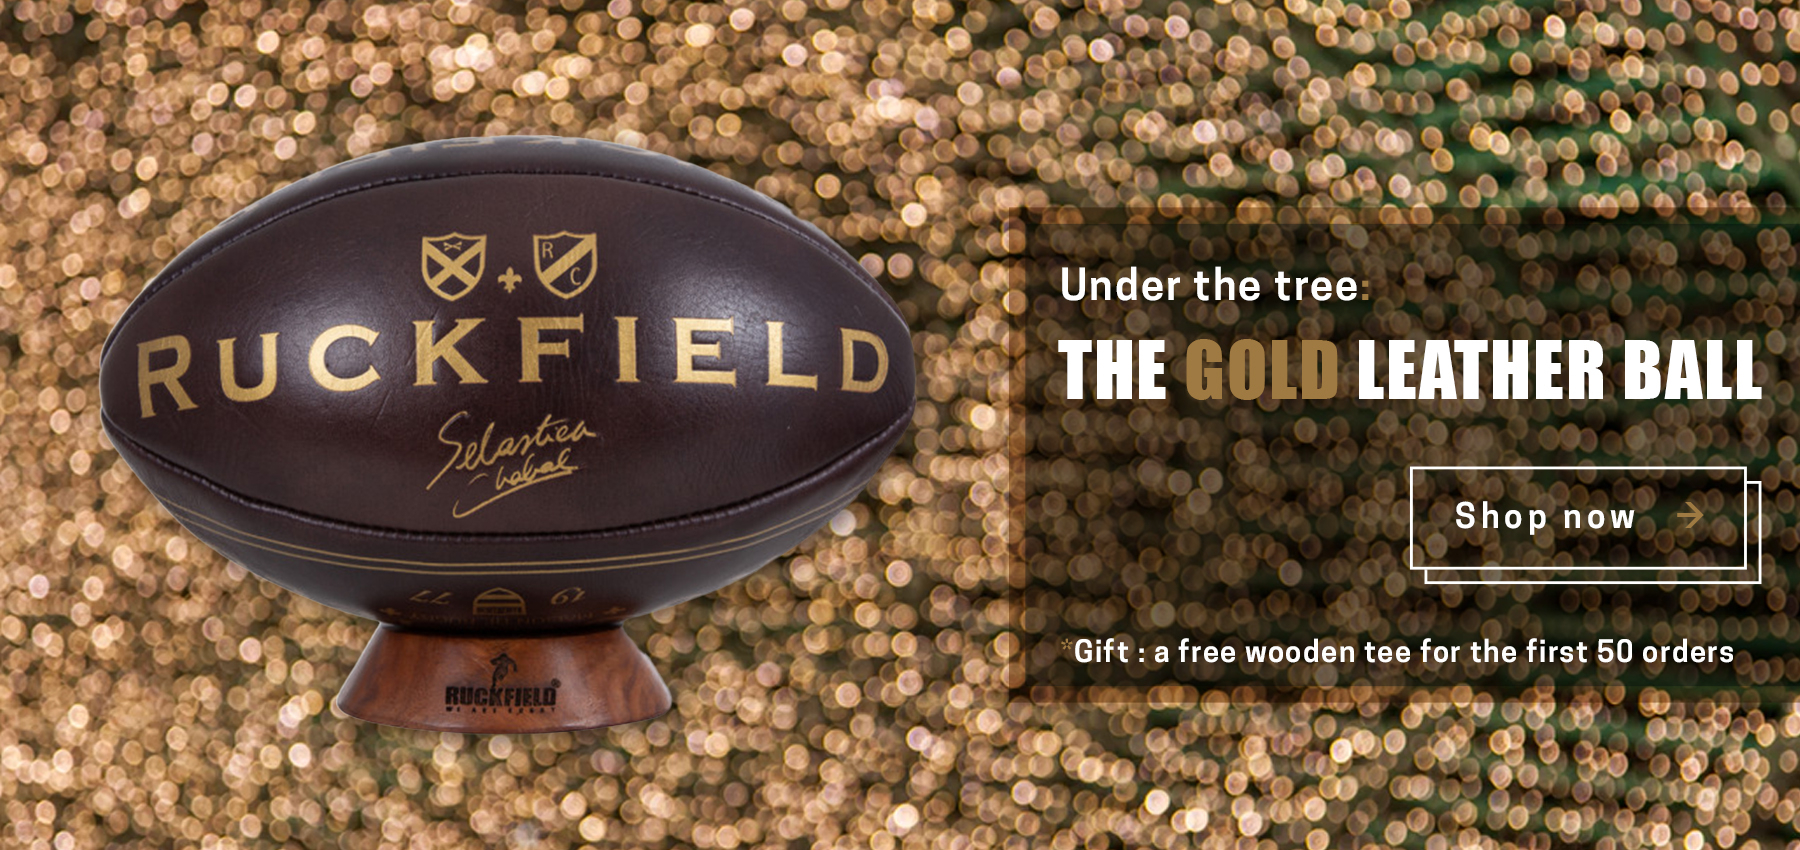 THE GOLD LEATHER BALL